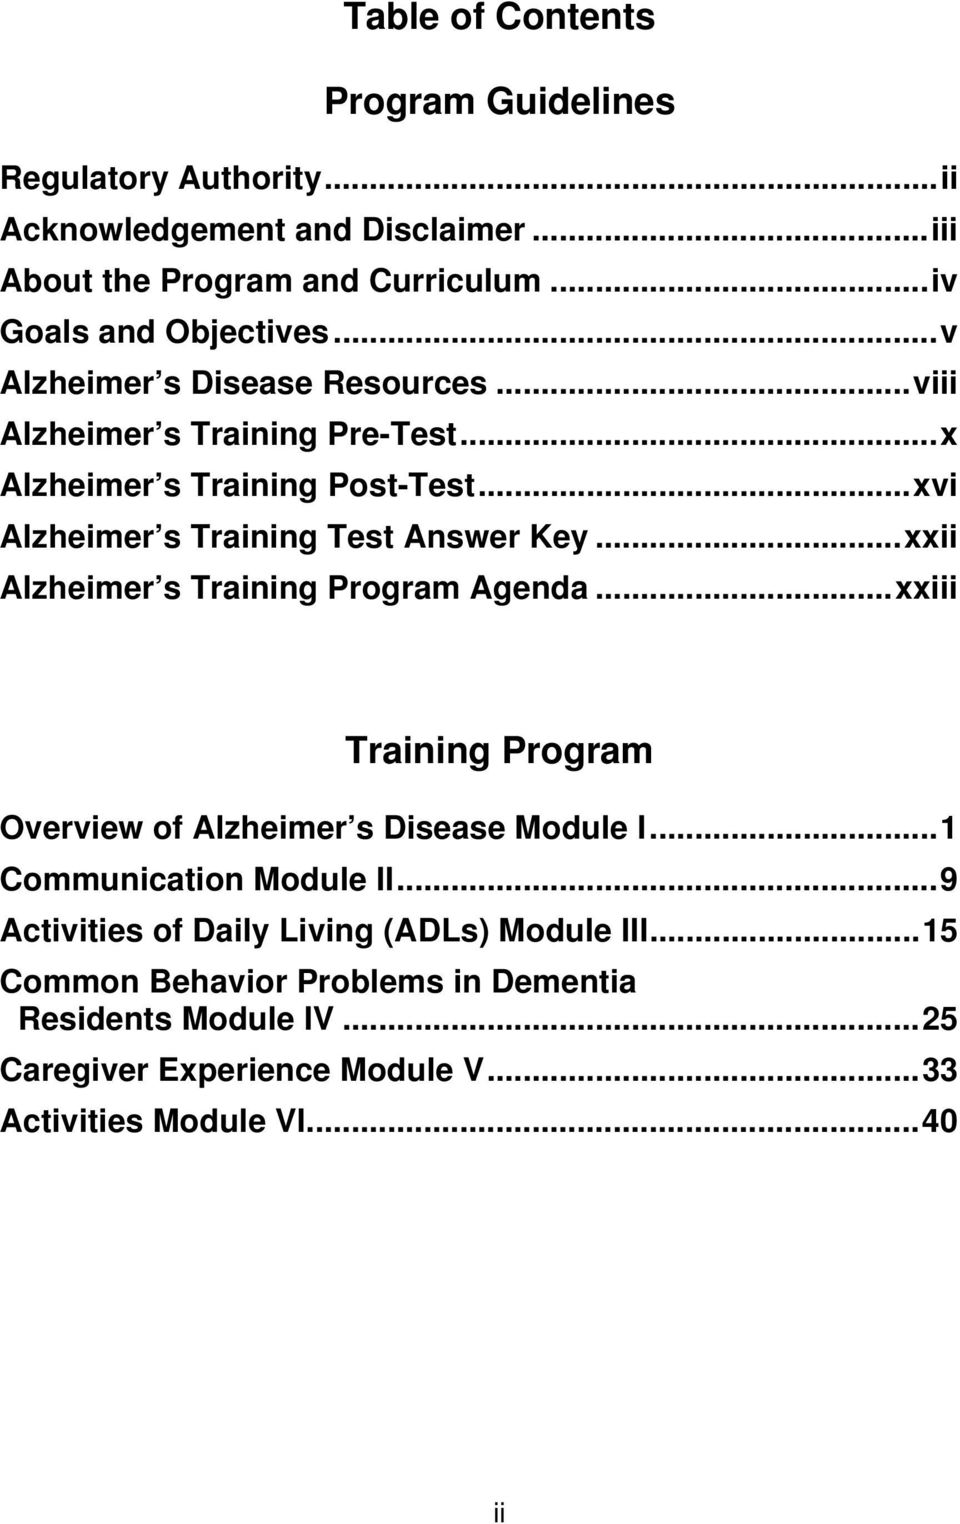 ..xvi Alzheimer s Training Test Answer Key...xxii Alzheimer s Training Program Agenda...xxiii Training Program Overview of Alzheimer s Disease Module I.